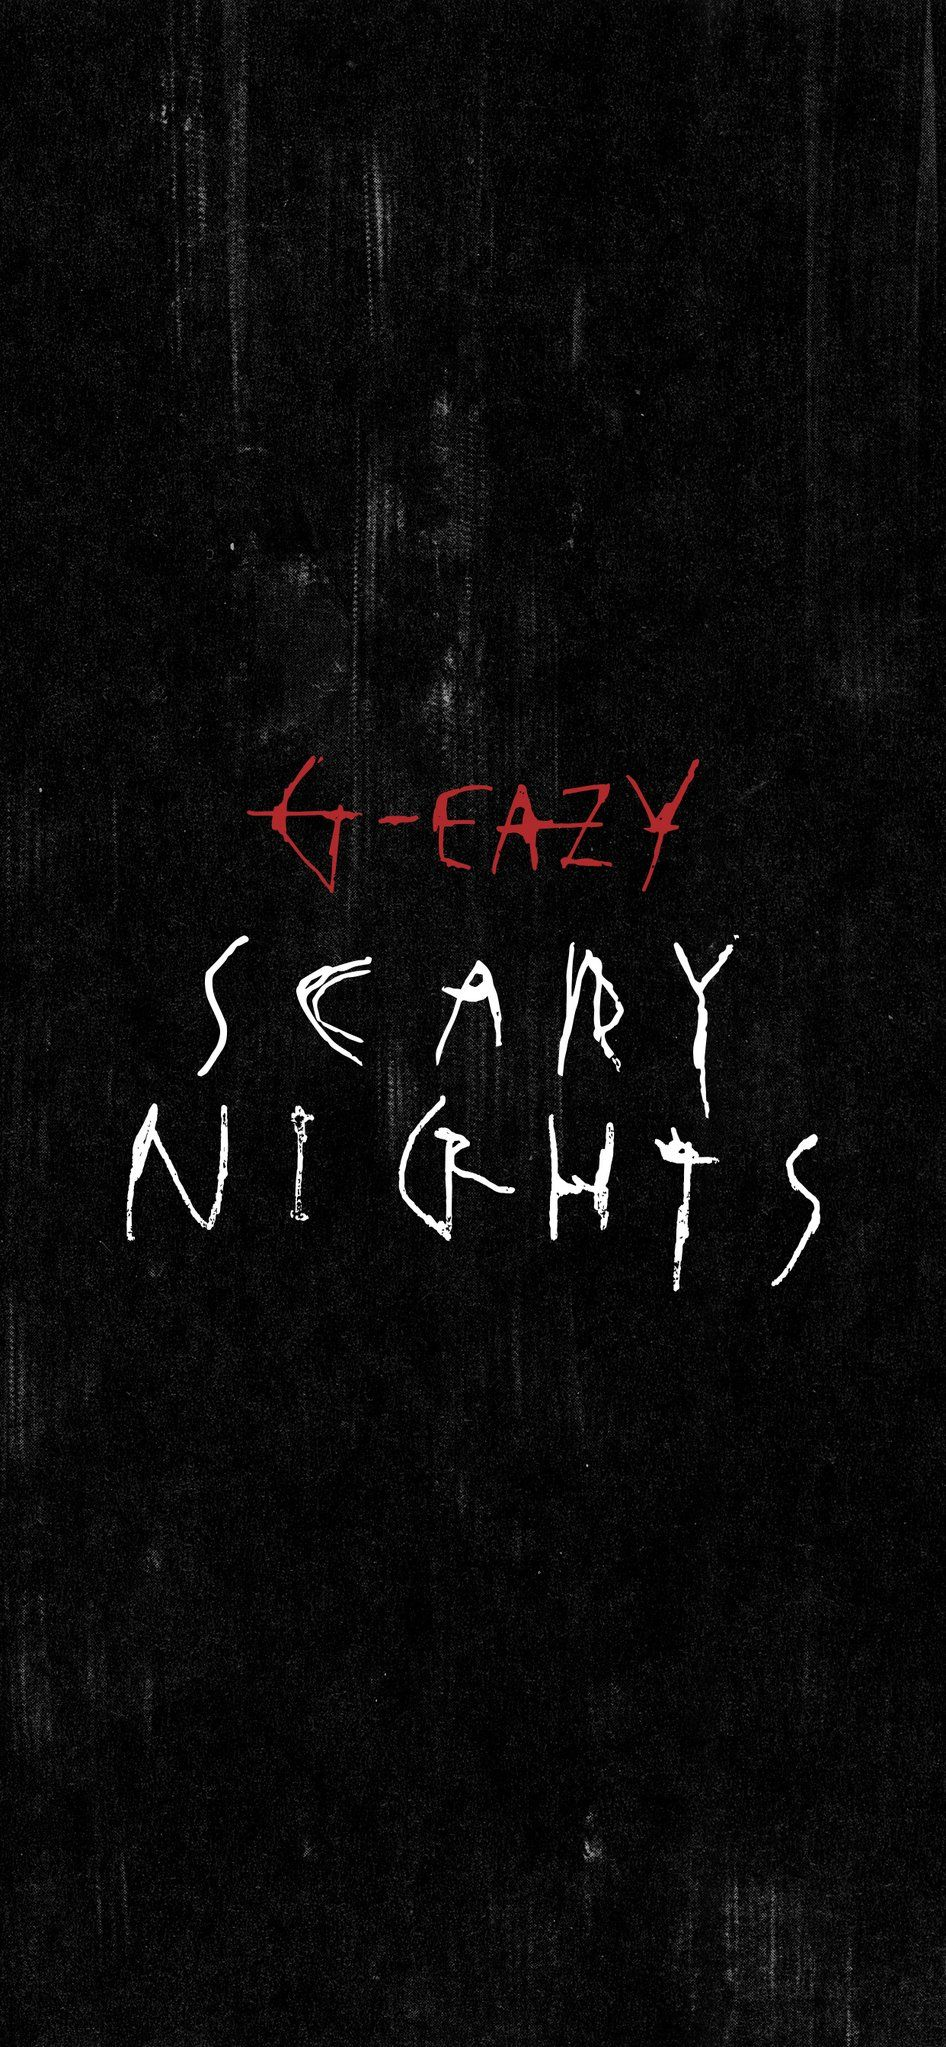 Eazyseason On Twitter G Eazy Iphone Wallpaper G Eazy Aesthetic Pictures